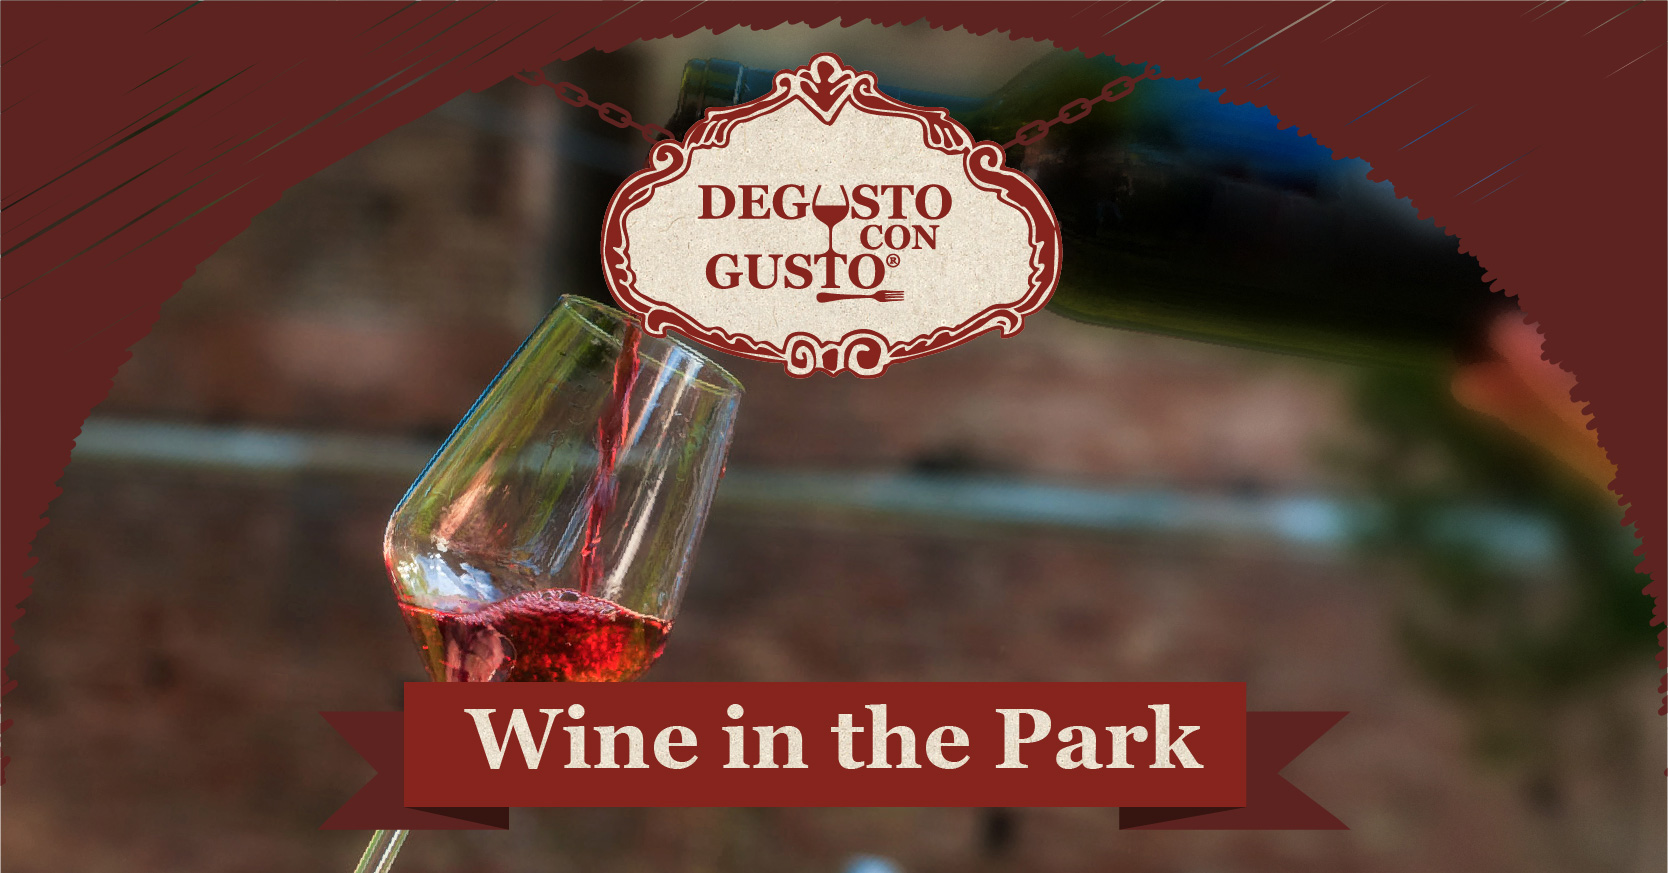 Degusto con Gusto - 2017 - Wine in the Park a Russi